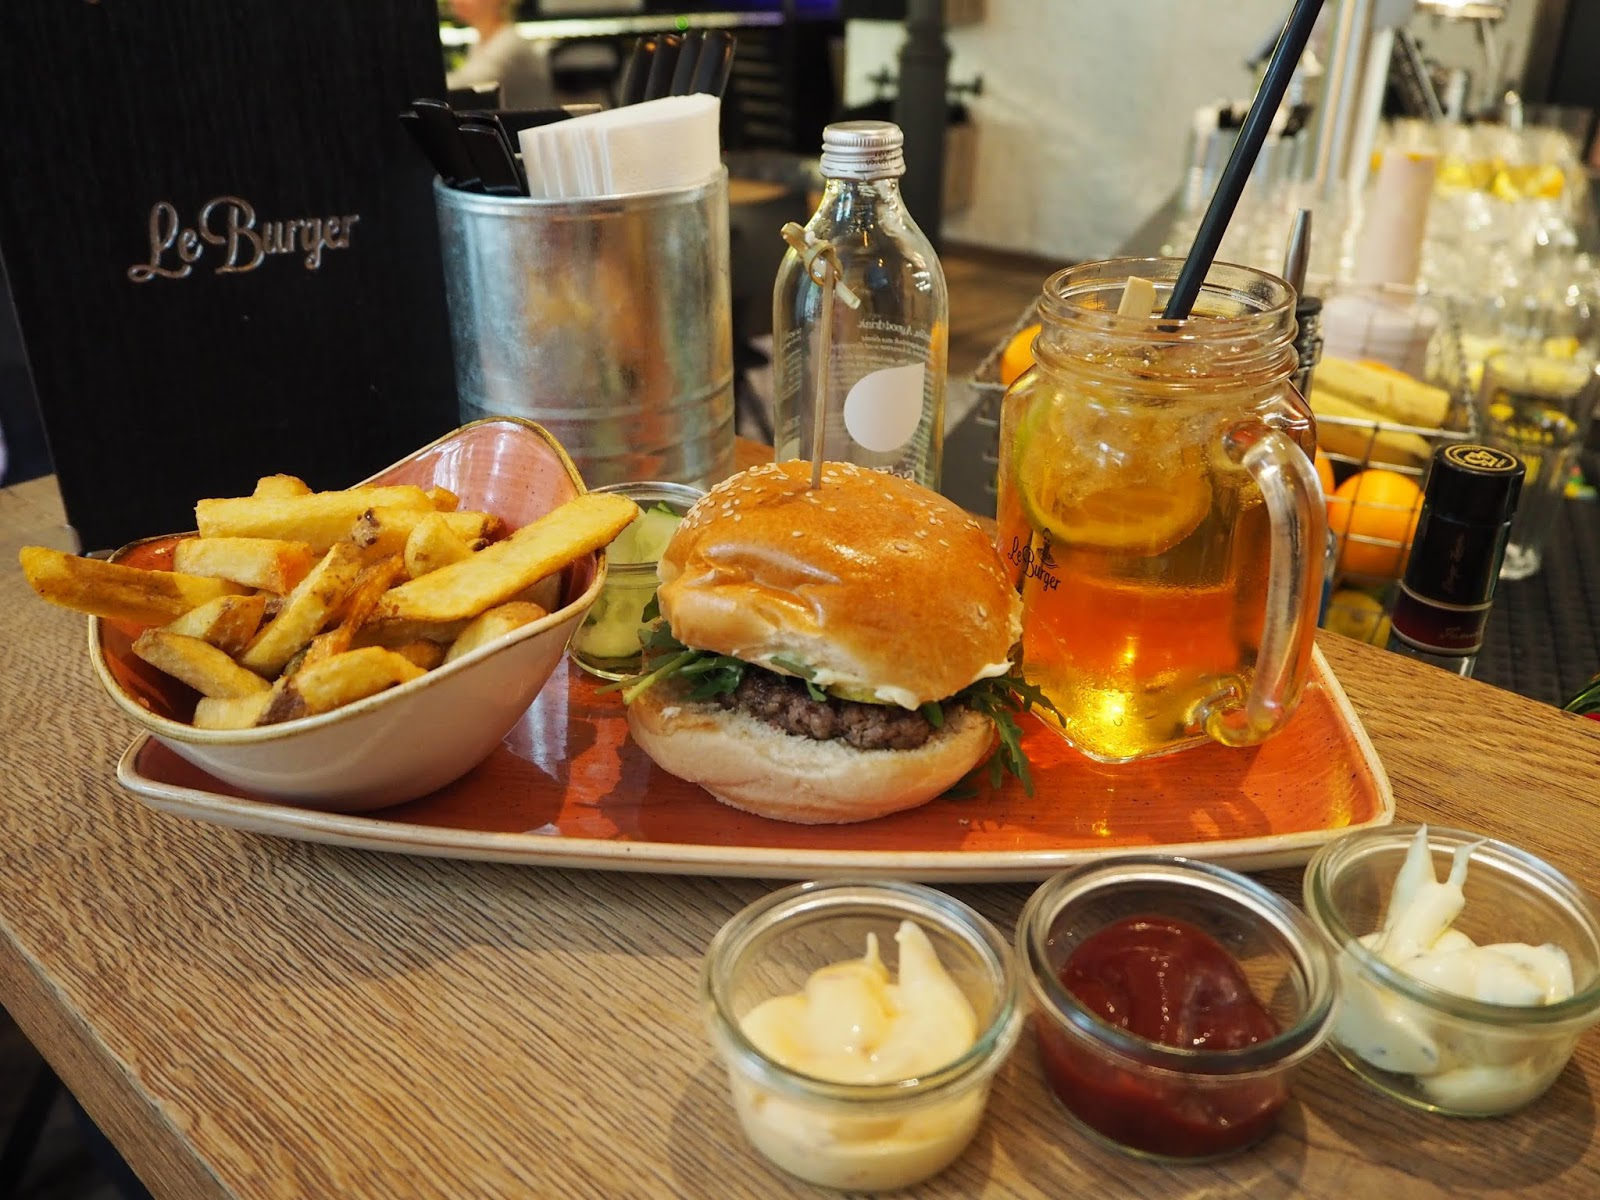 le burger in vienna